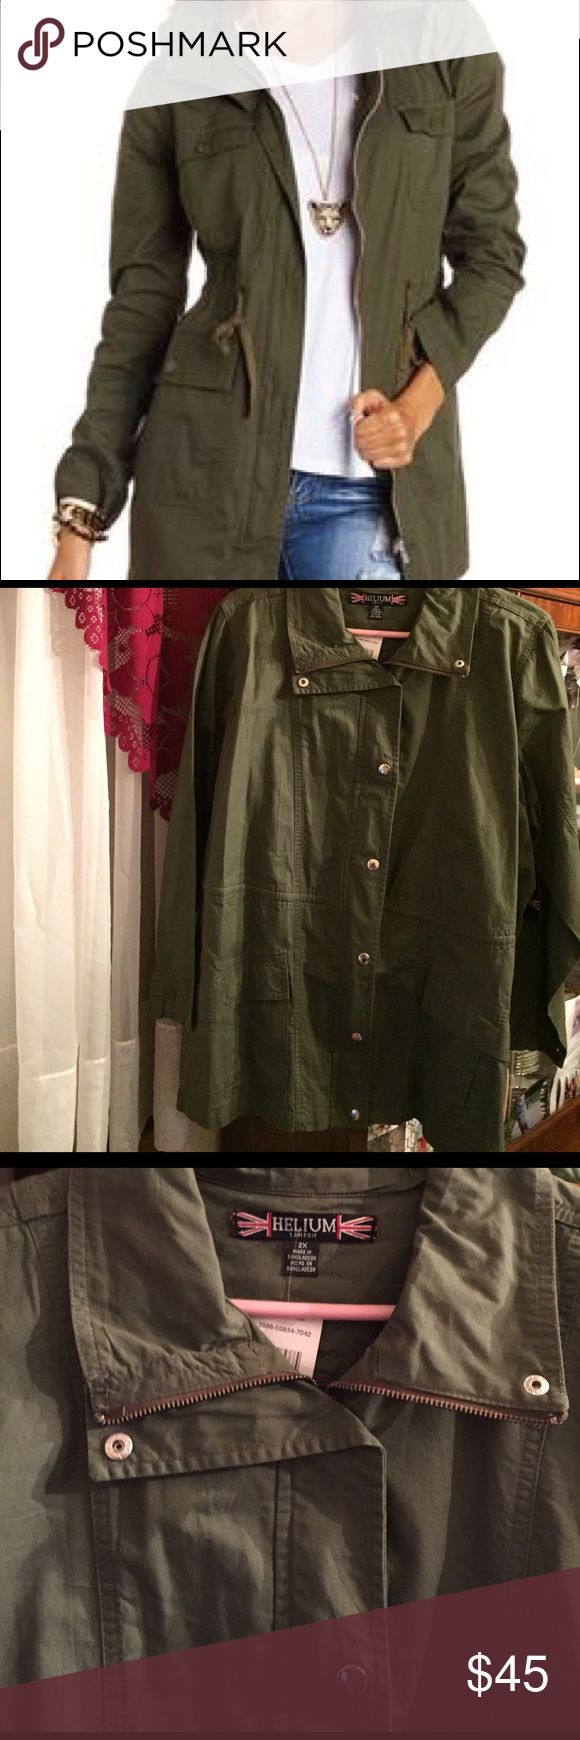 Helium Olive NWT Utility Jacket Beautiful Olive utility jacket in the size 2X buy helium of London. Snap front closure side pockets and adjustable snap sleeves and sides. Inside zipper and unlined. New with tag never worn. Helium of London Jackets & Coats Utility Jackets